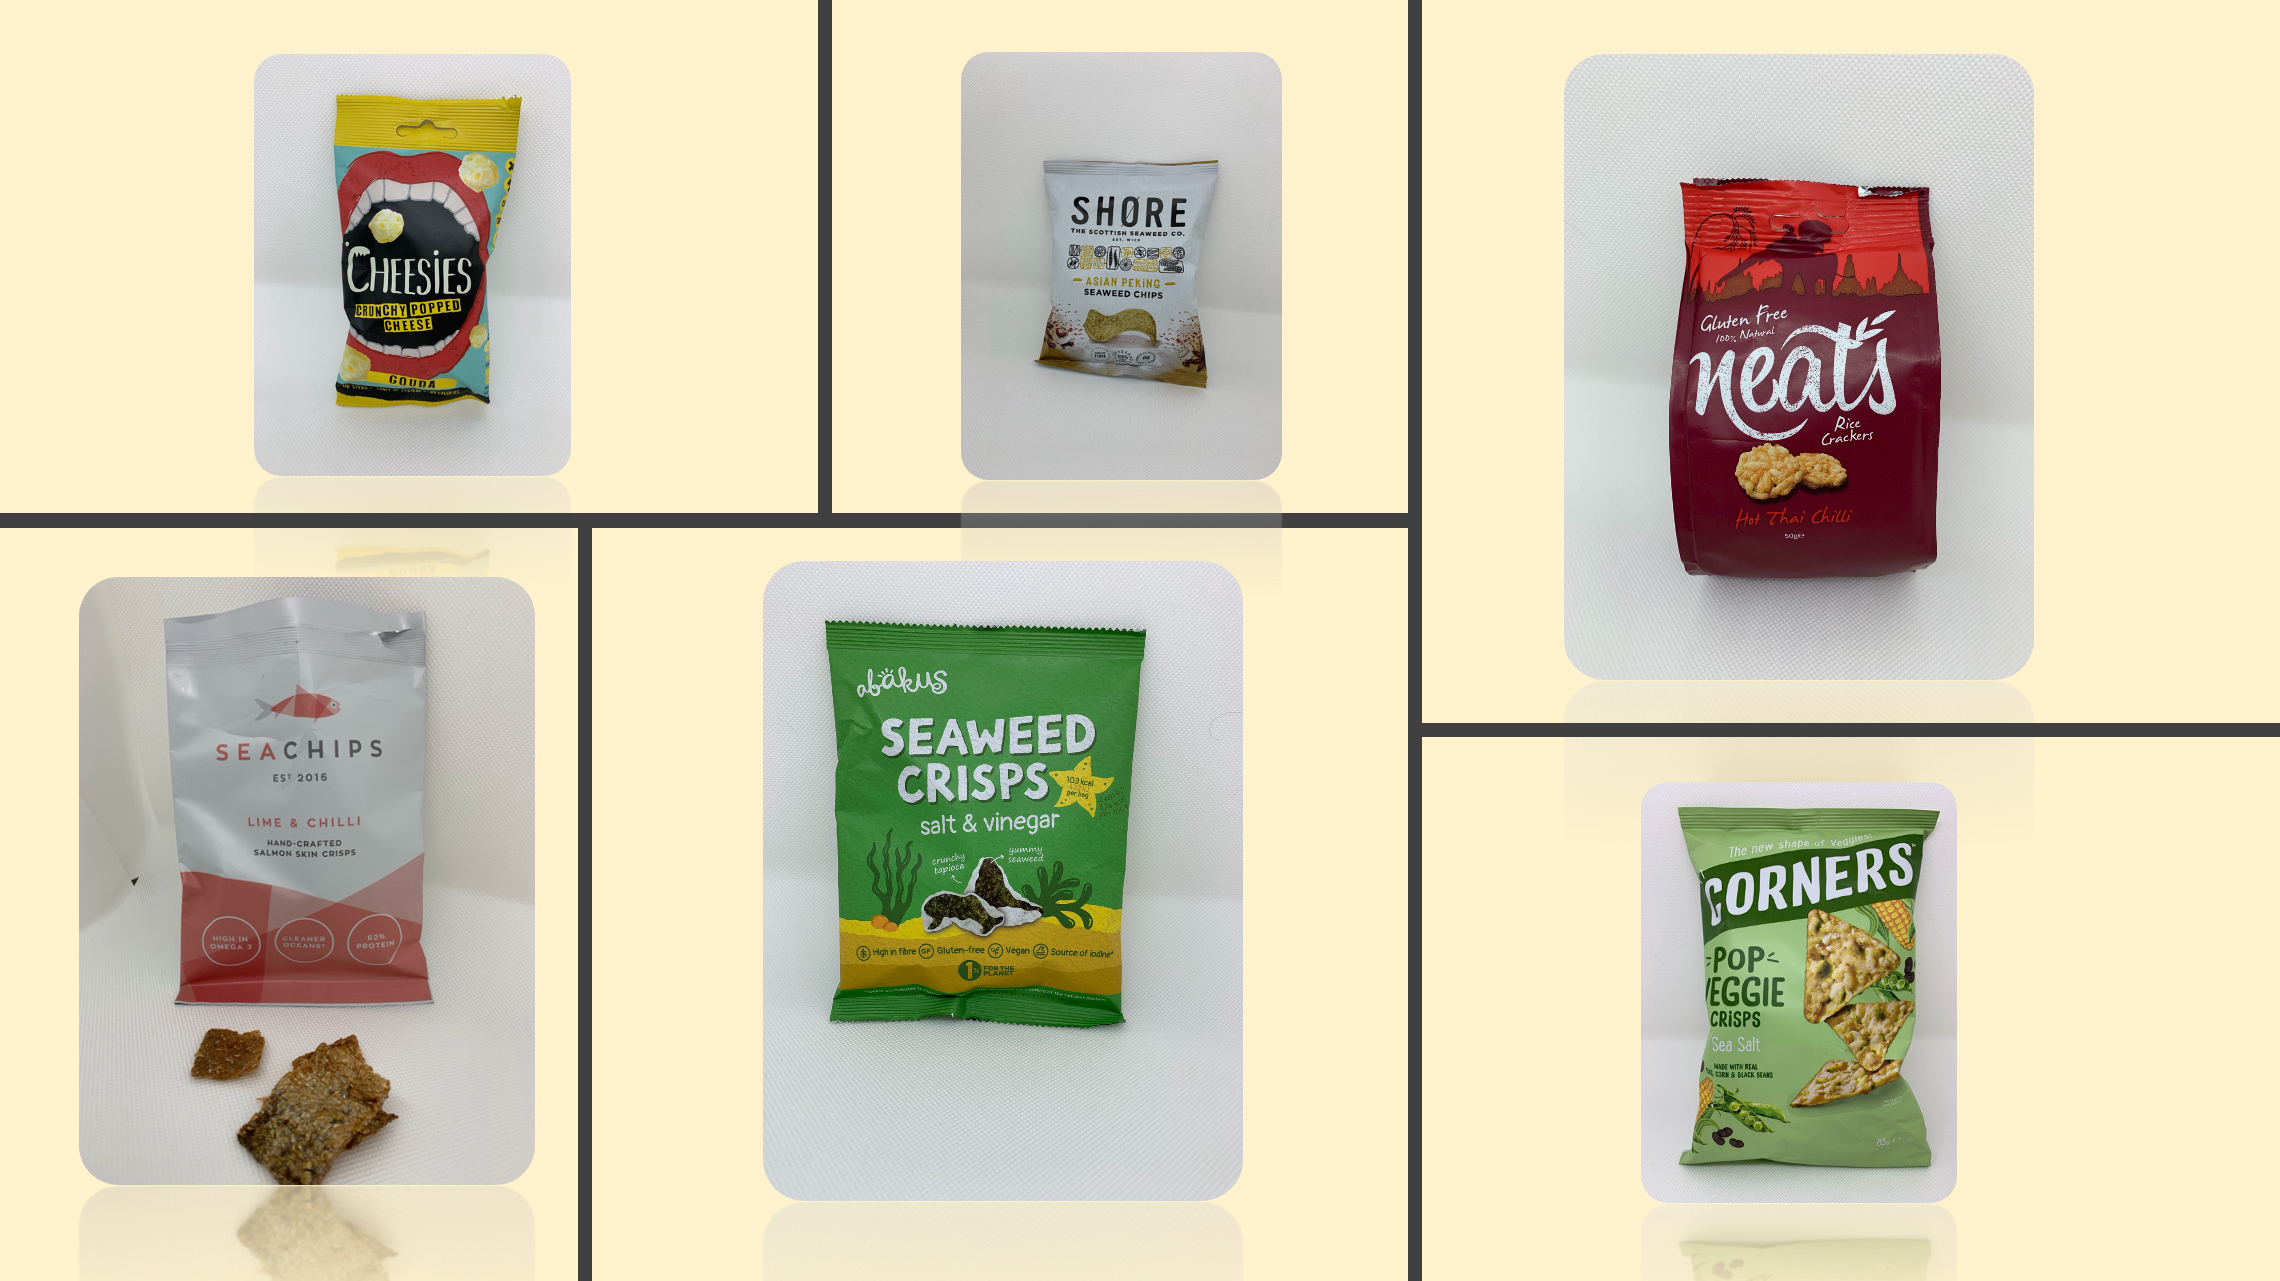 Five savoury snack products made with alternative bases like seaweek, fish skin, cheese, pulses